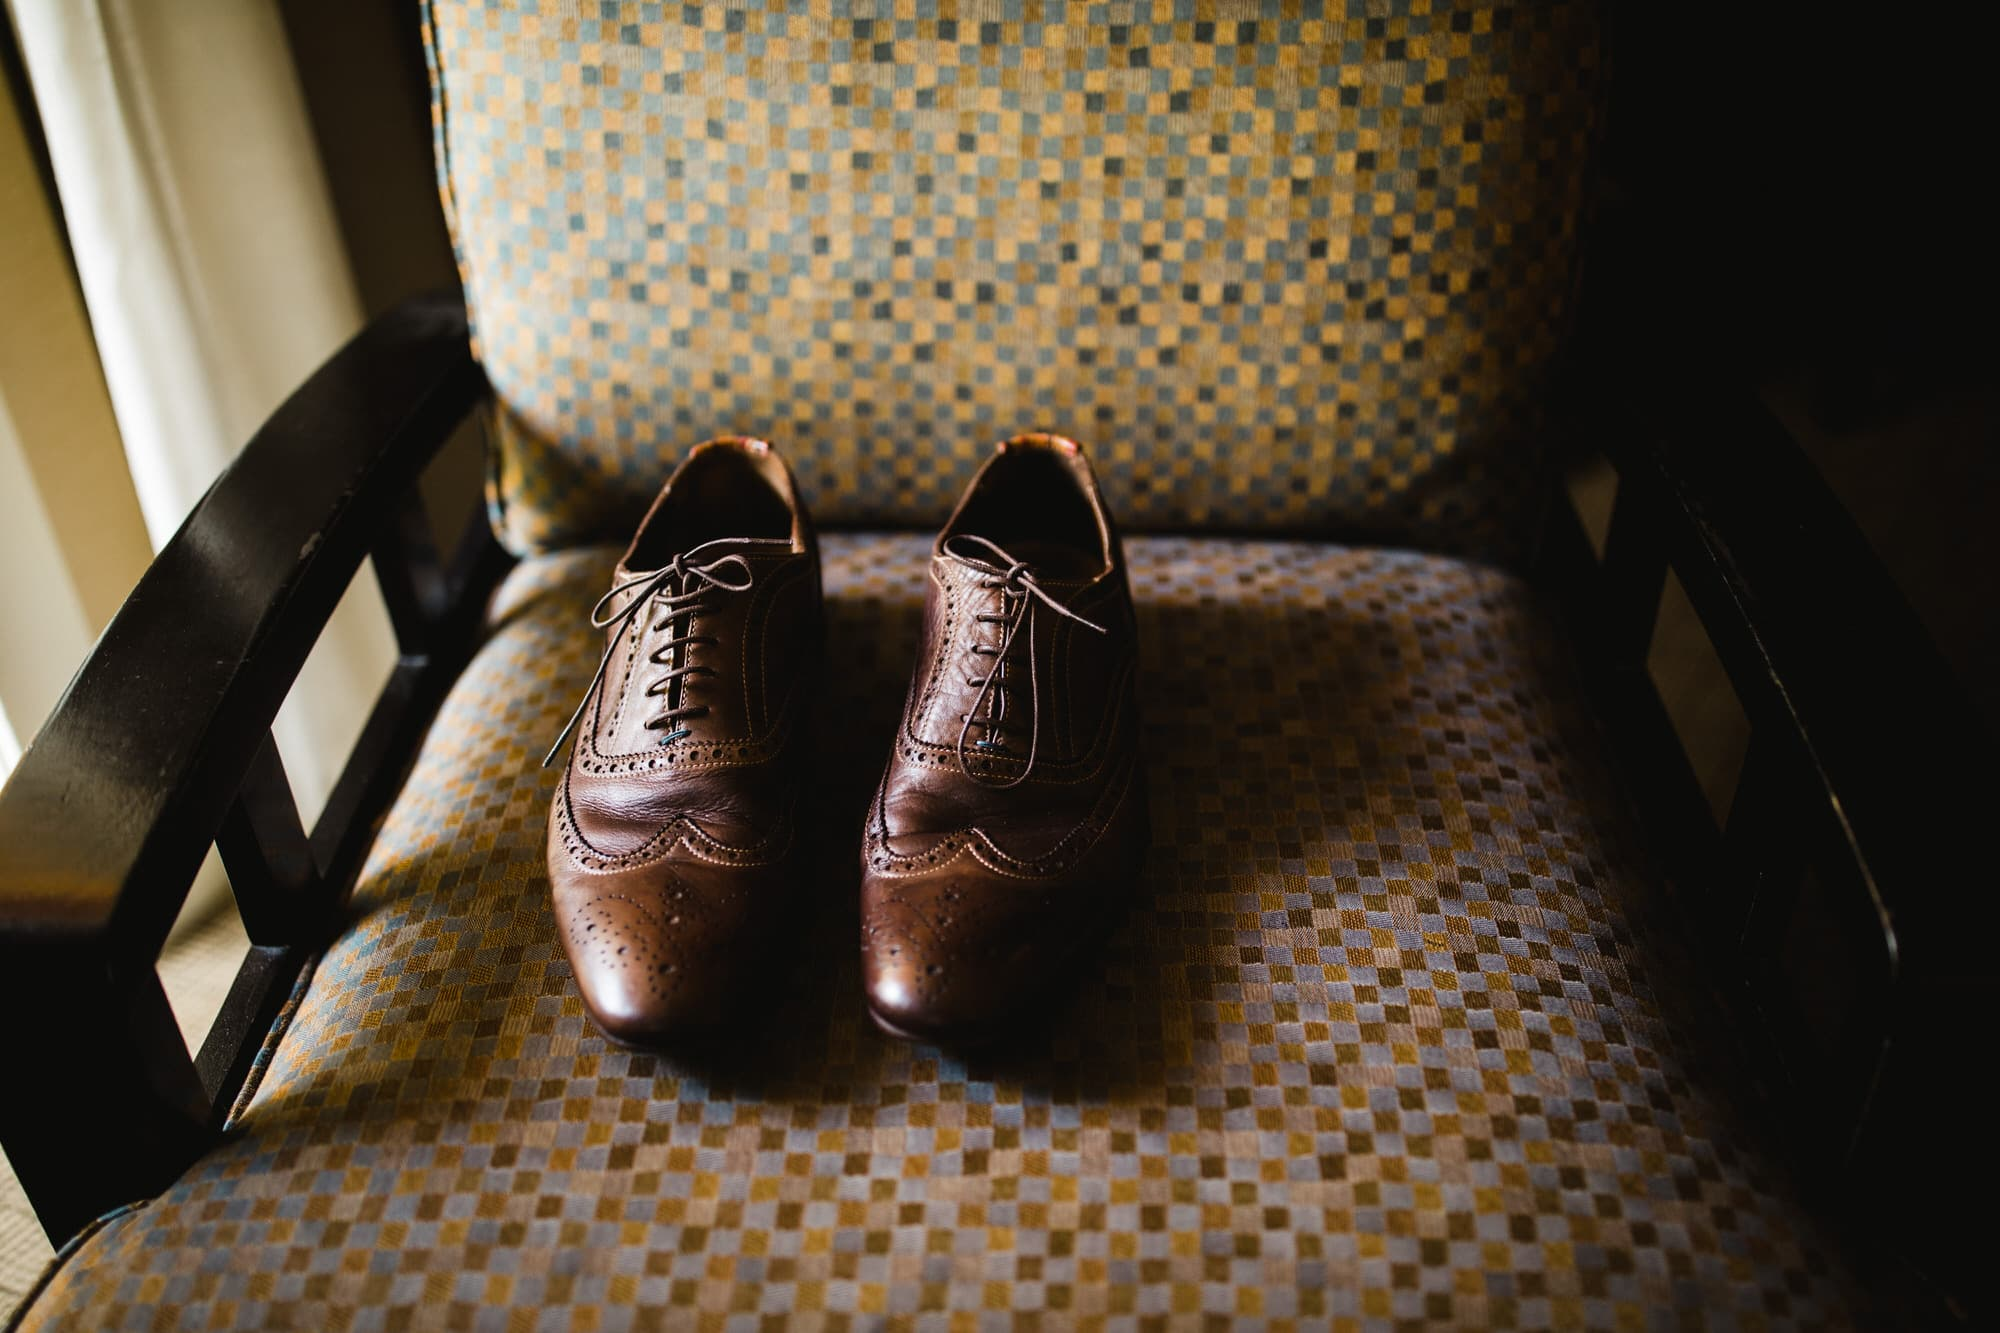 Groom's brown Oxfords shoes on chair. Destination wedding photographer Brent Calis.